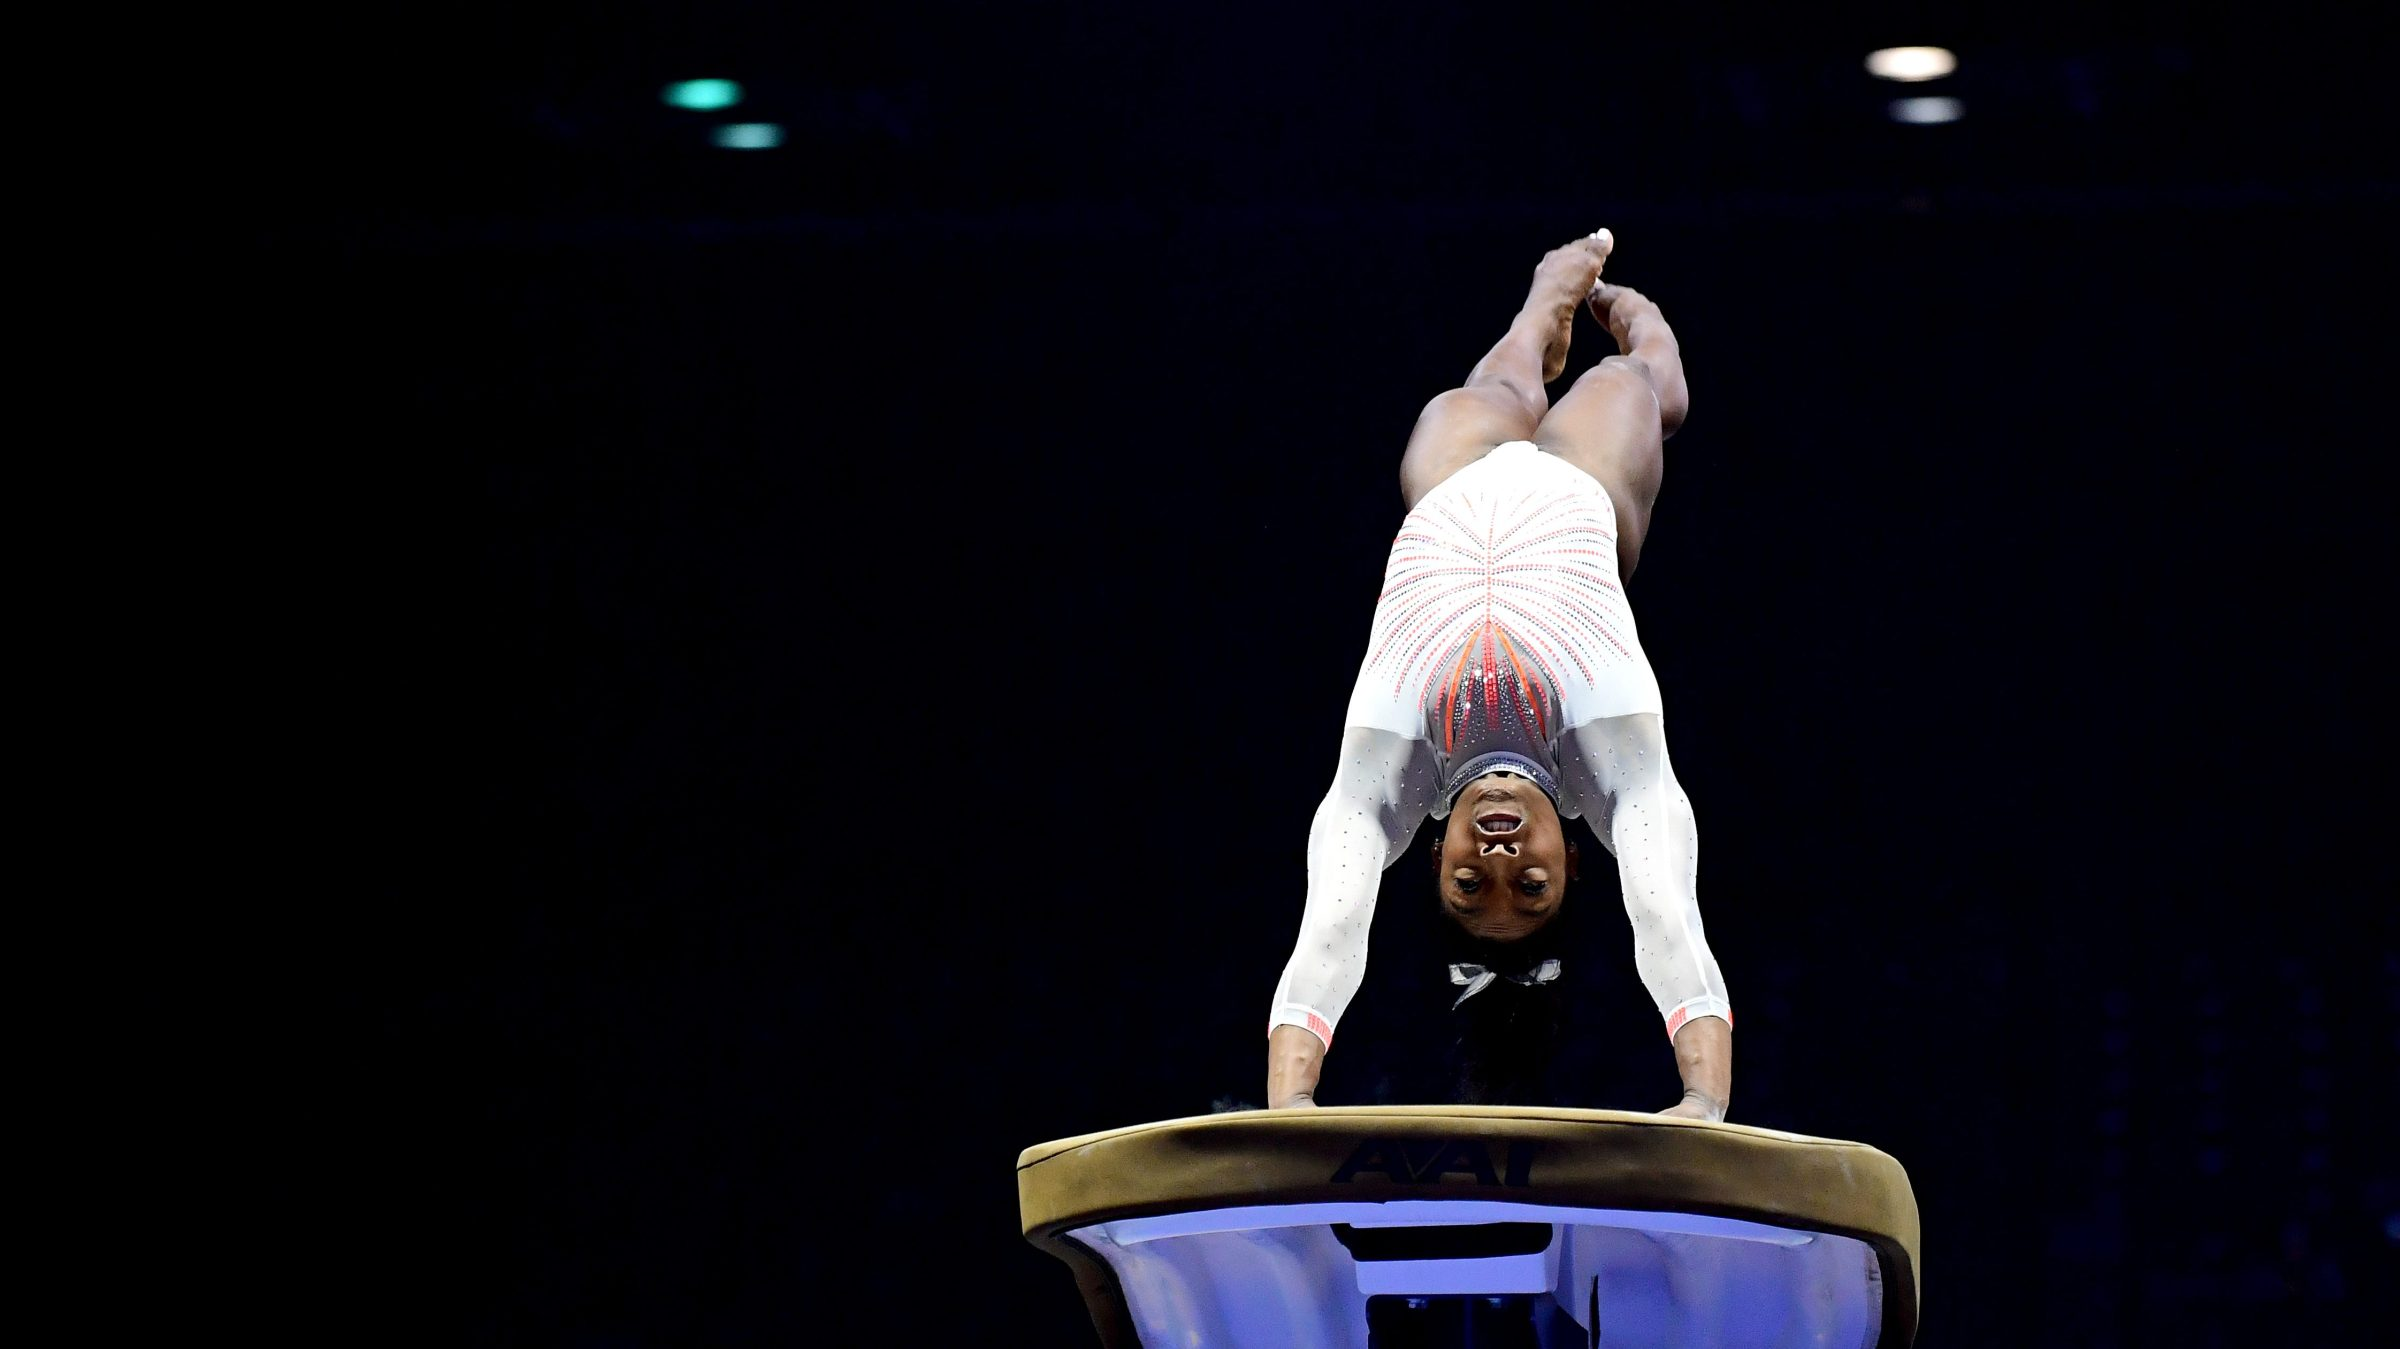 Simone Biles does the Yurchenko double pike while competing on the vault during the 2021 GK U.S. Classic gymnastics competition at the Indiana Convention Center on May 22, 2021 in Indianapolis, Indiana. Biles became the first woman in history to land the Yurchenko double pike in competition.